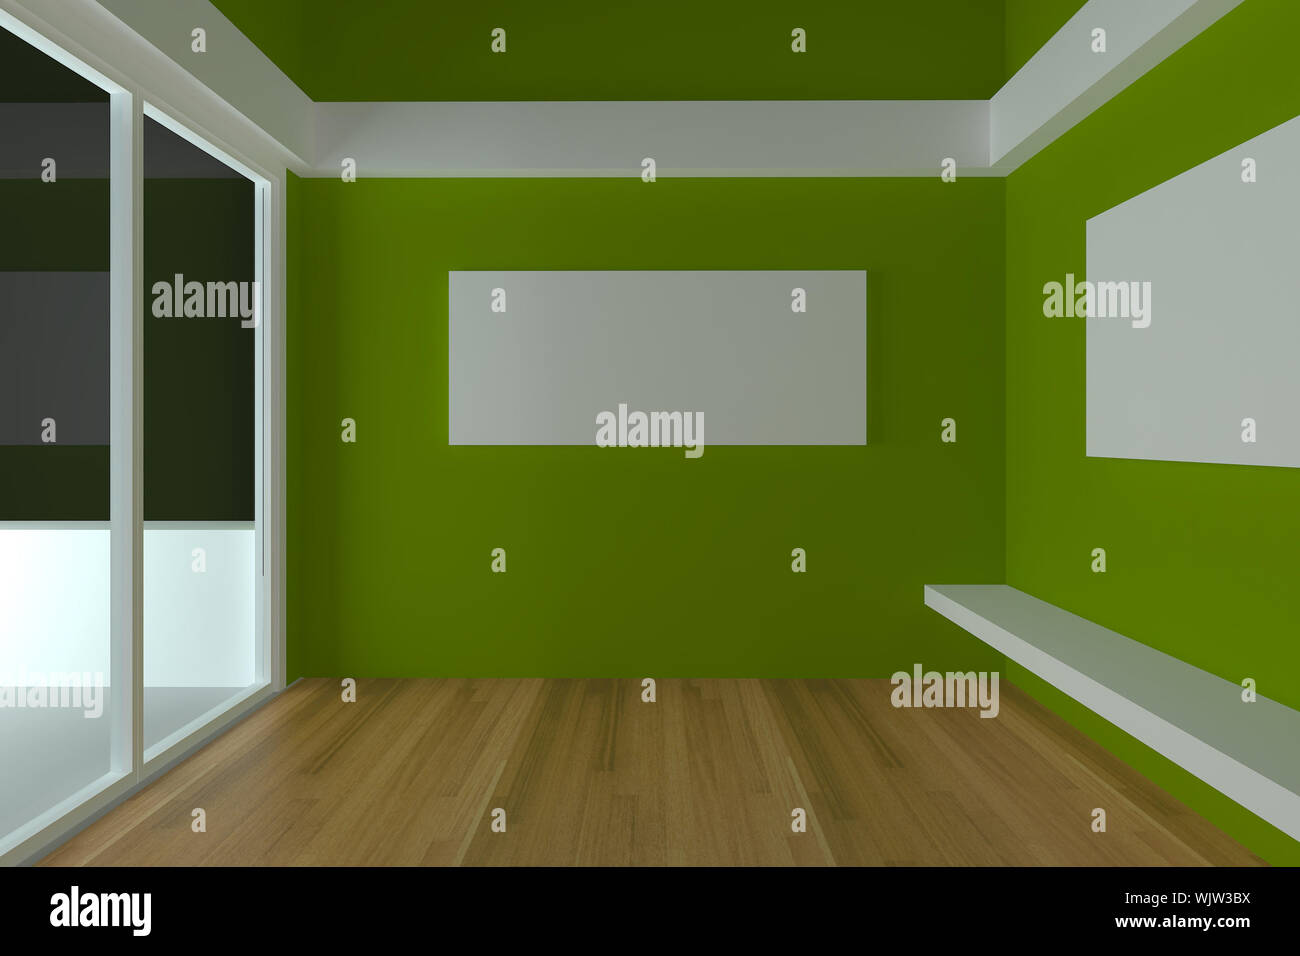 Home Interior Rendering With Empty Room Color Green Wall And Decorated With Wood Floors Stock Photo Alamy